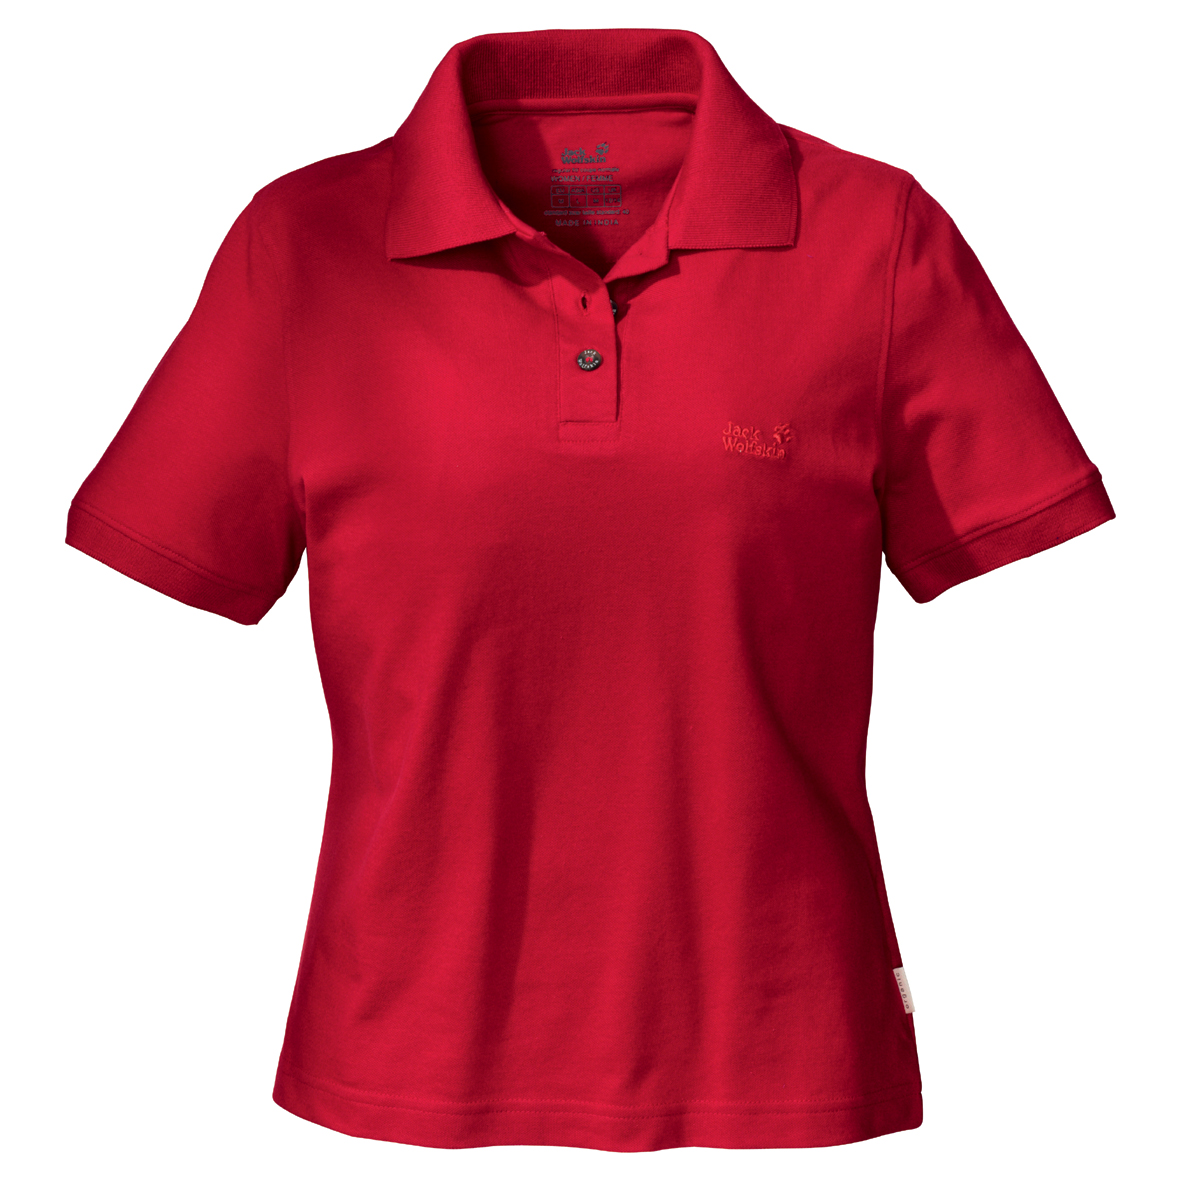 JACK WOLFSKIN WOMEN POLO SHIRT TANGO RED